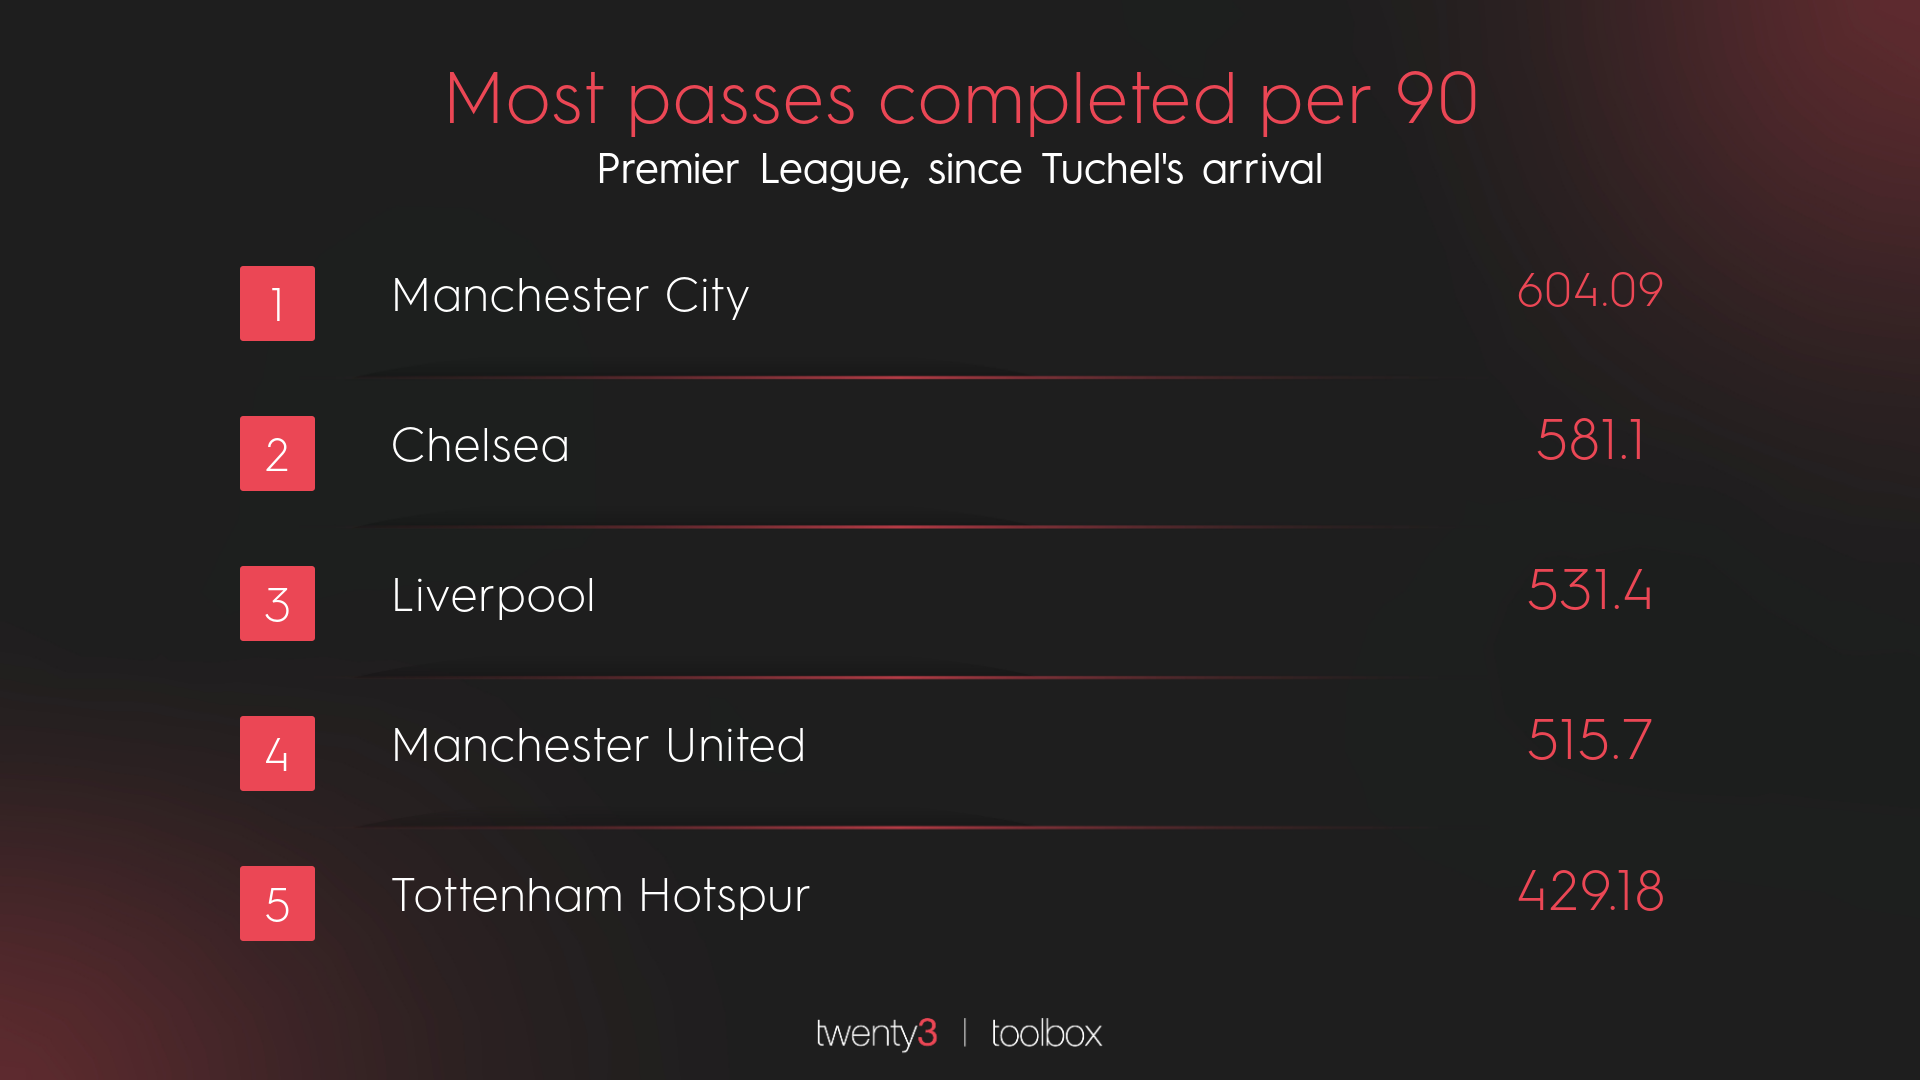 A graphic ranking the Premier League teams by most passes completed since Thomas Tuchel's arrival at Chelsea.